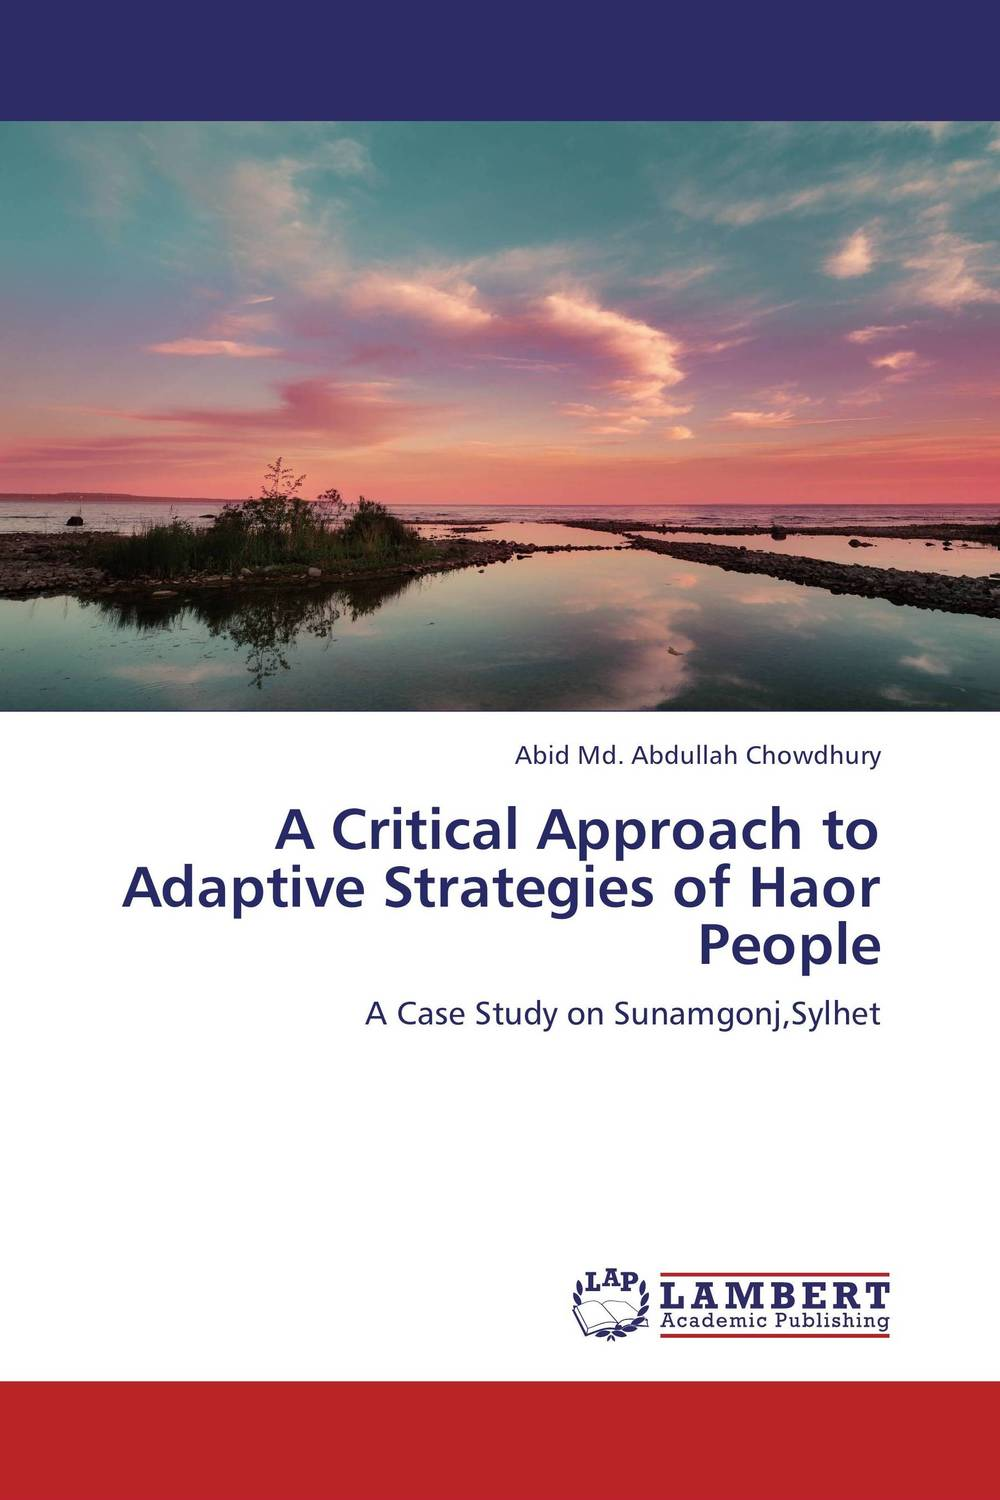 A Critical Approach to Adaptive Strategies of Haor People david swanson the data driven leader a powerful approach to delivering measurable business impact through people analytics